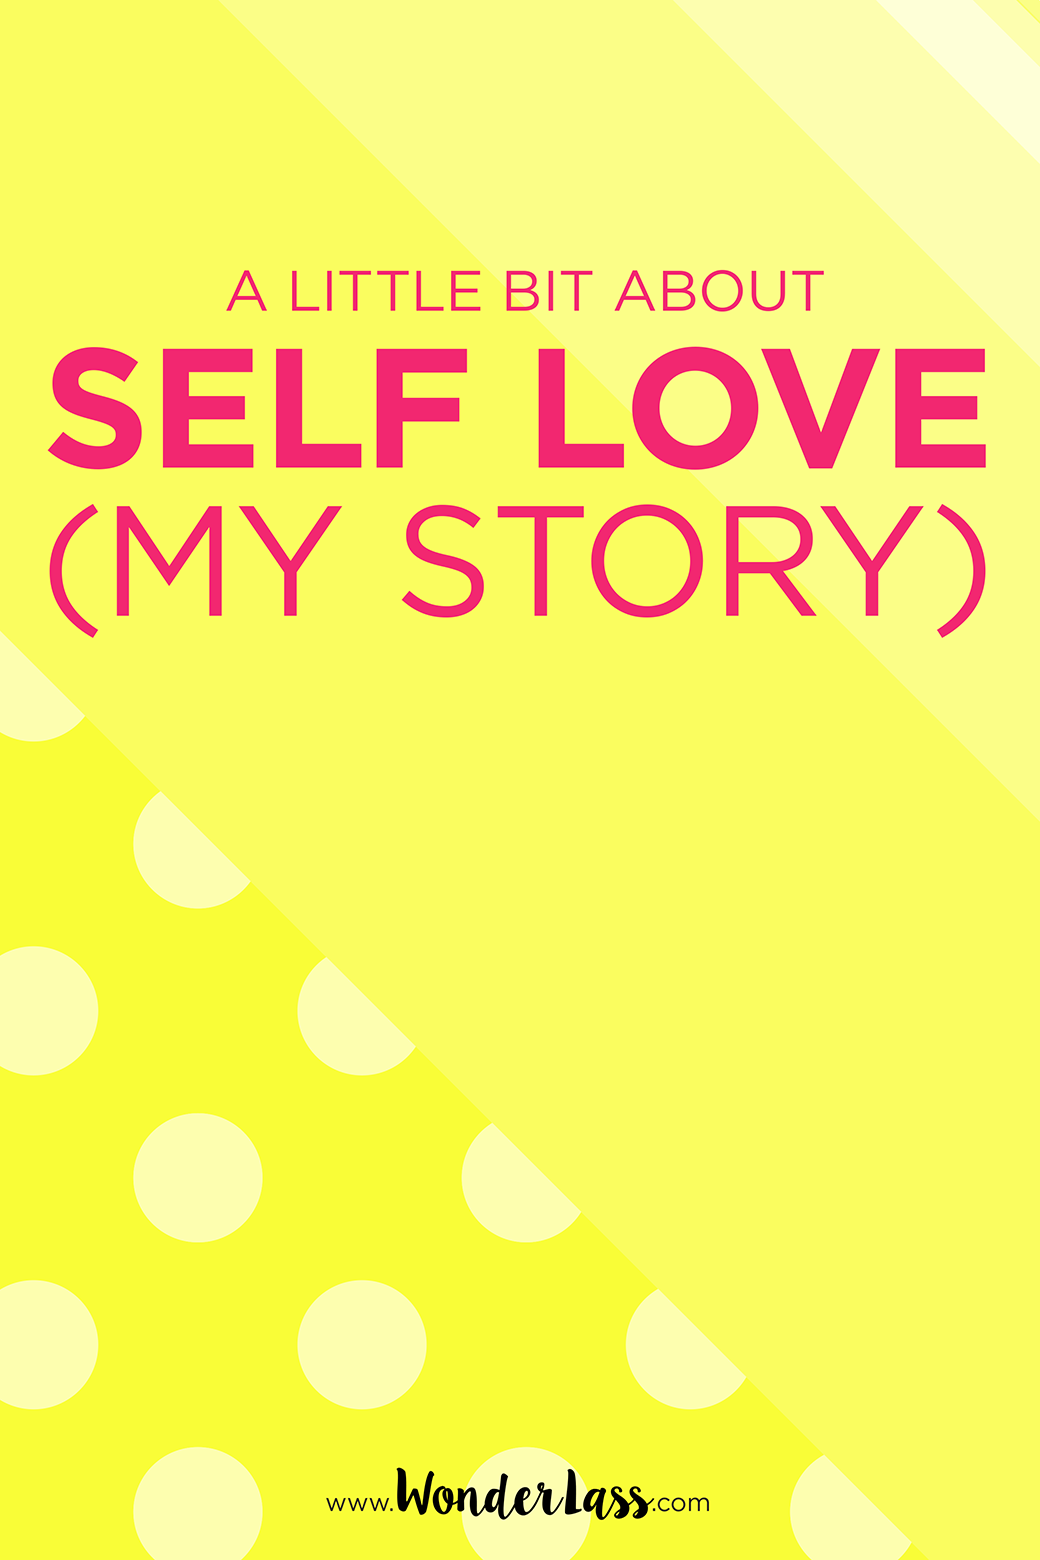 My journey on how (and why) I was able to start loving myself!